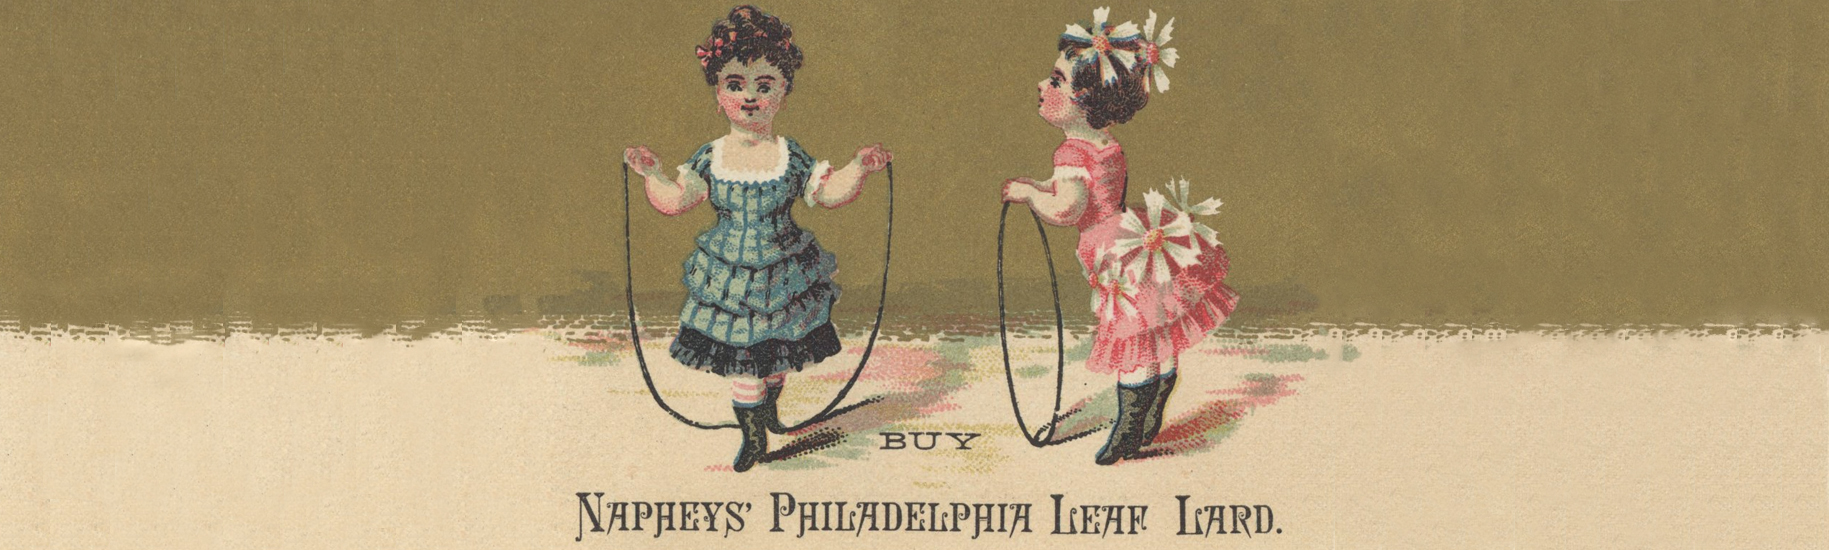 Naphey's advertisement with illustration of two girls jump roping